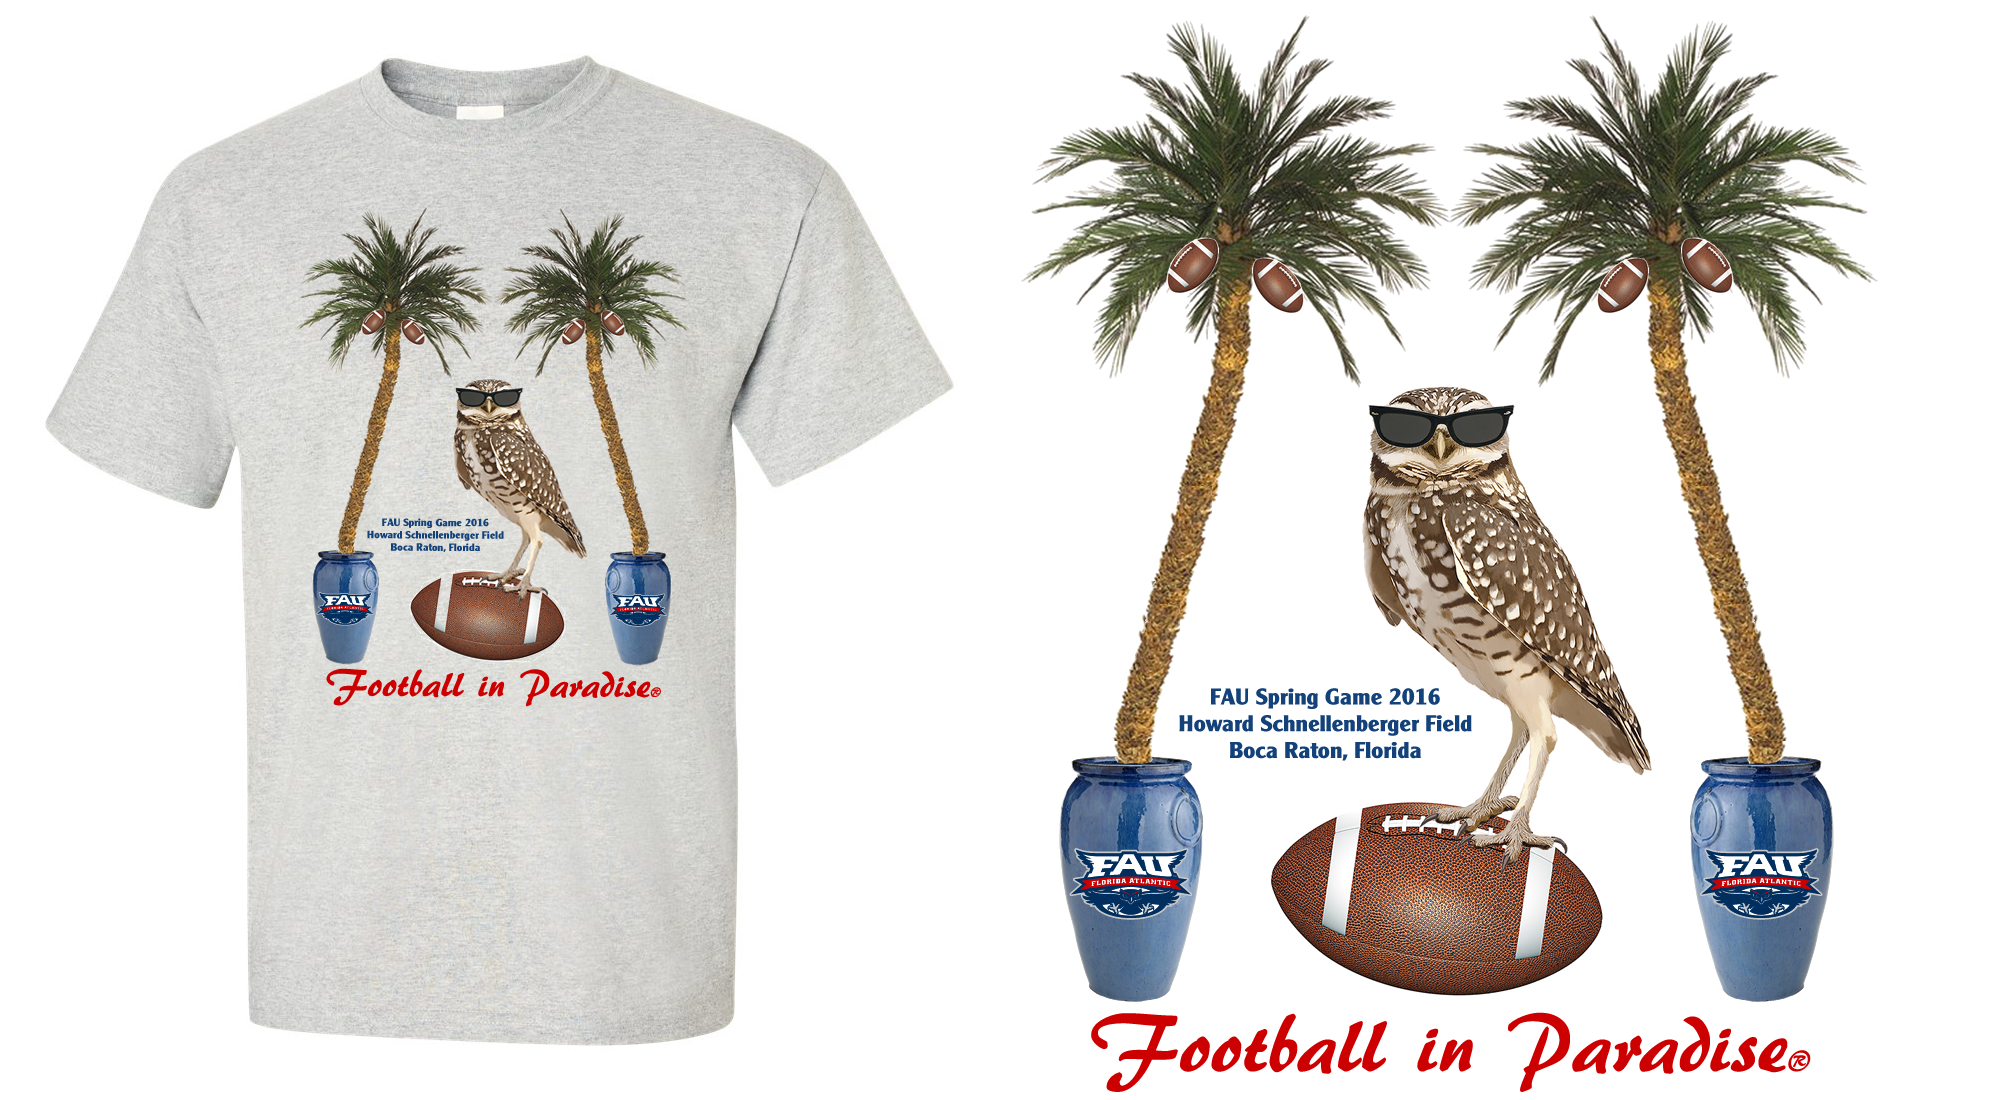 FAU Spring Game T-Shirt